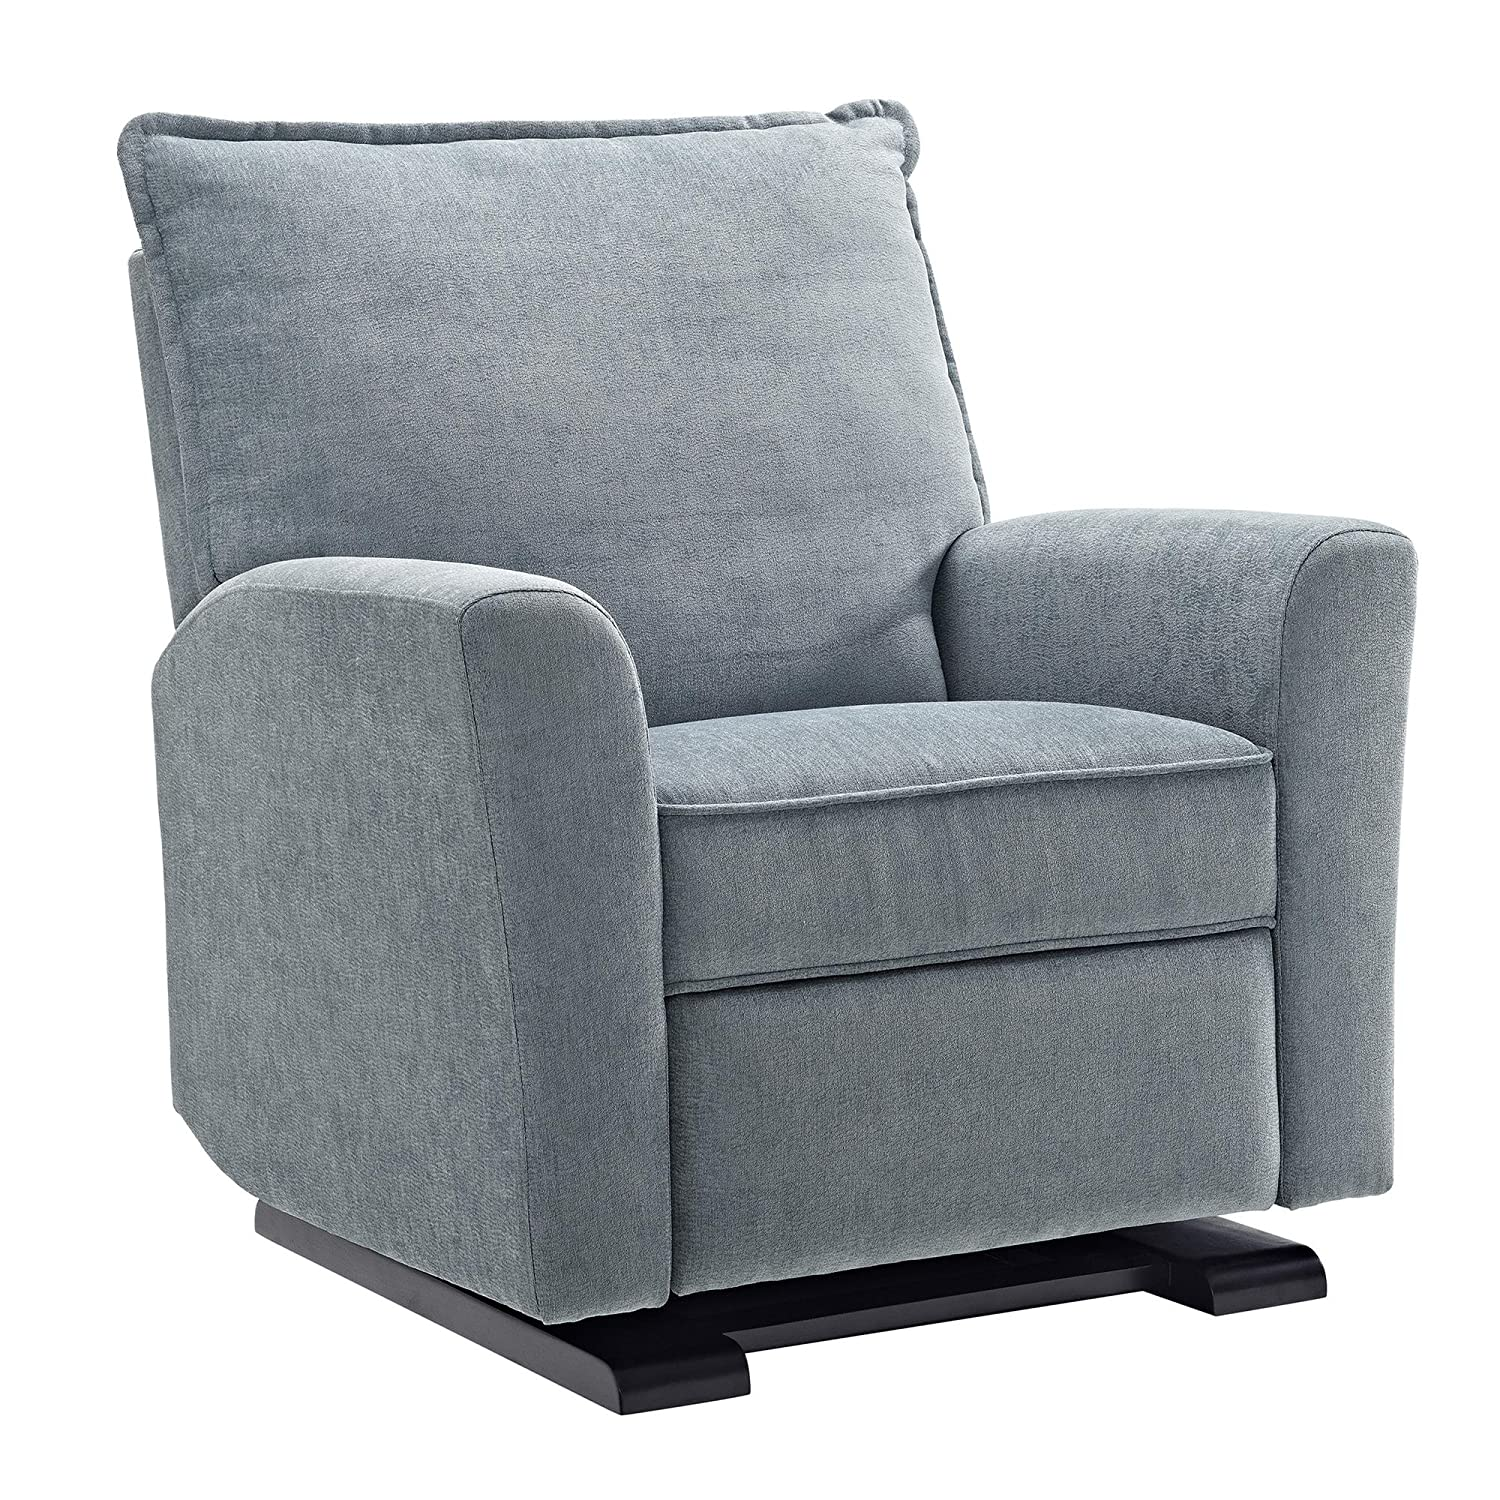 Baby Relax Raleigh Gliding Recliner, Gray Gray